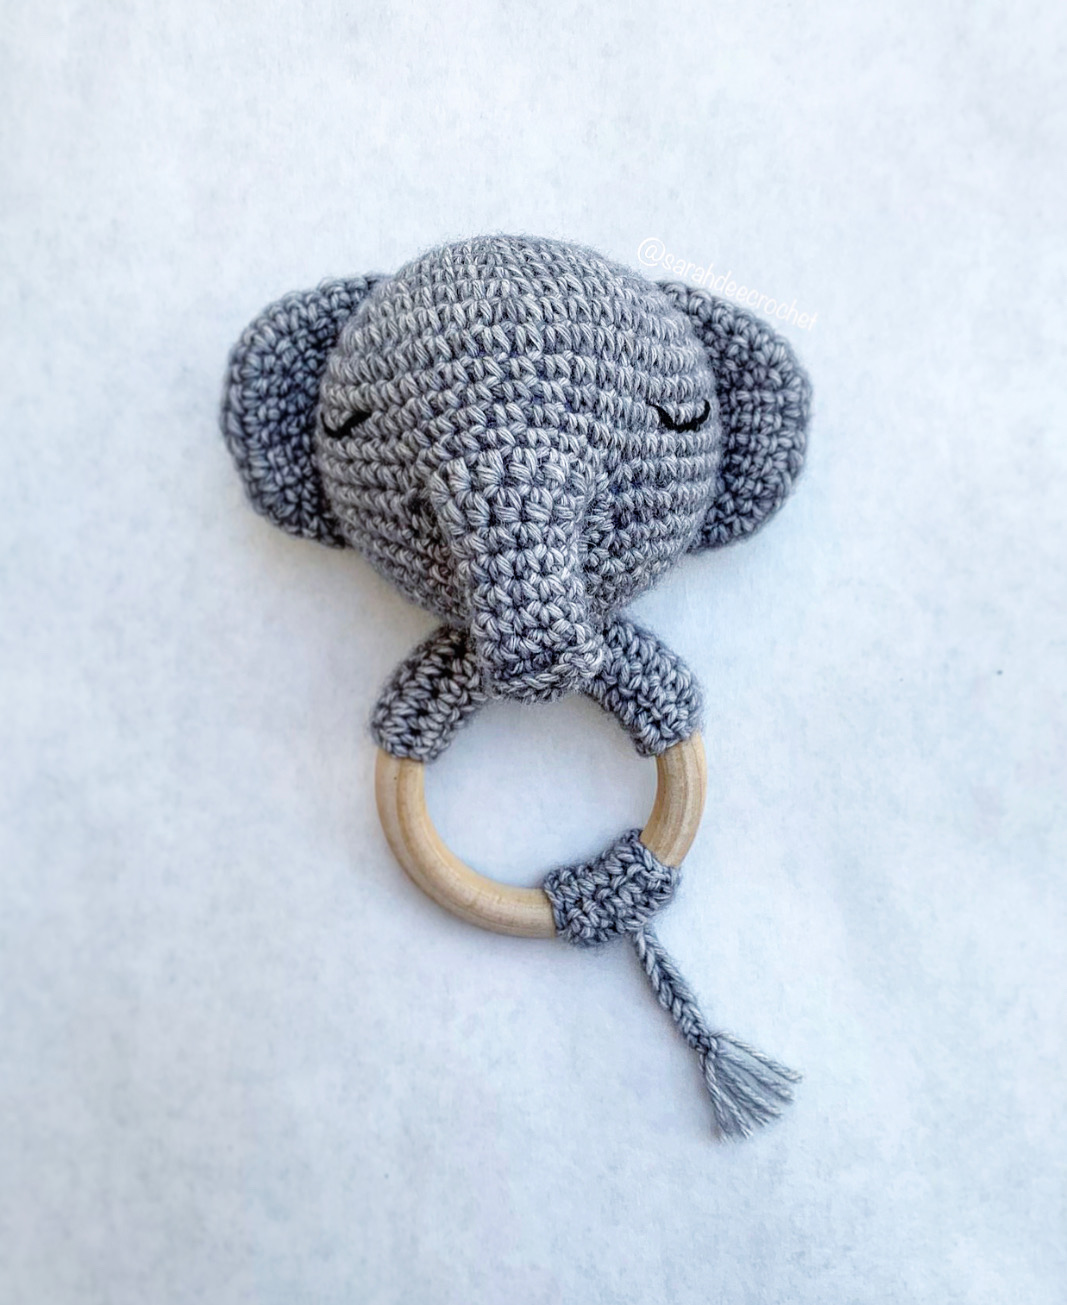 Crochet Elephant Comforter Amigurumi Project: British Wool | TOFT | 1305x1067